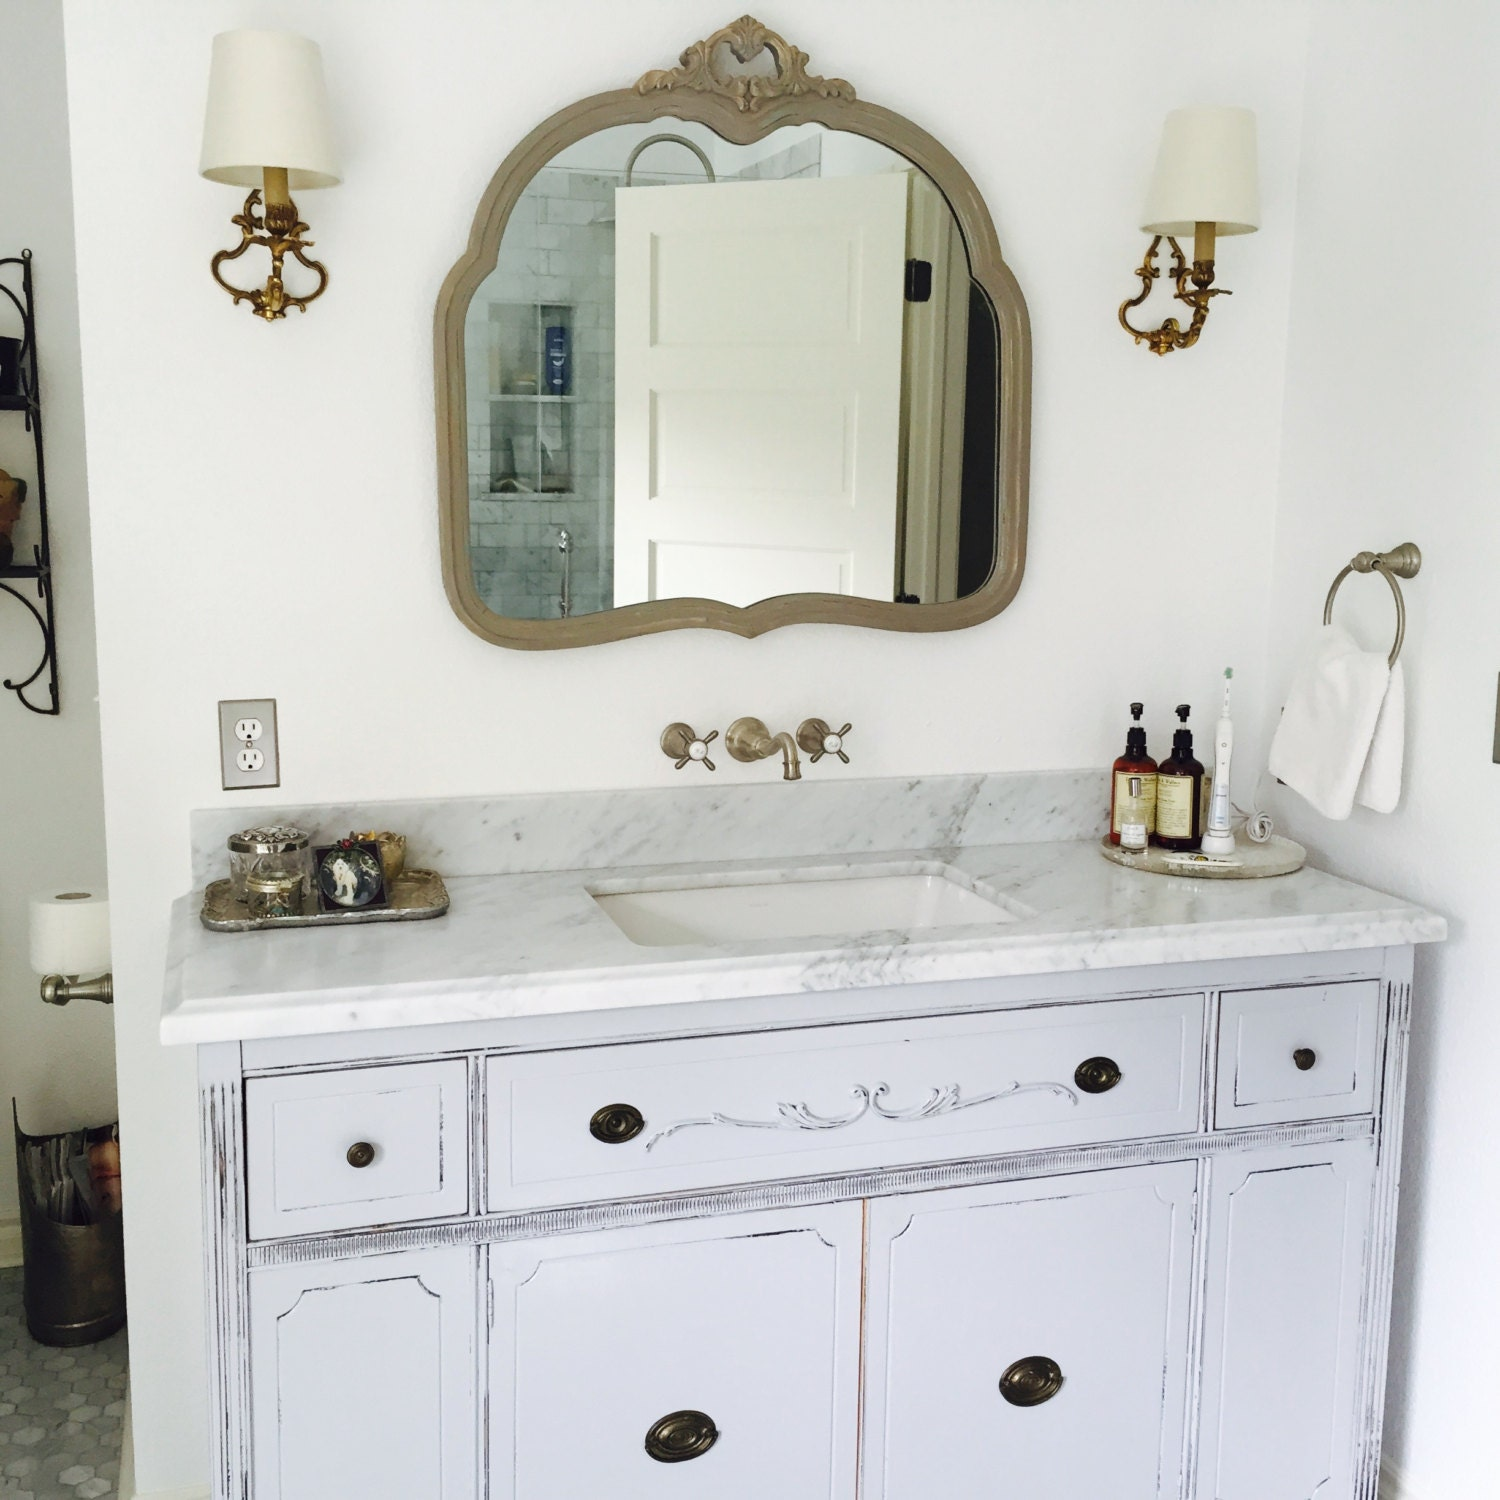 Bathroom vanity for double or single sink we custom convert from antique dresser shabby chic for Custom double sink bathroom vanity